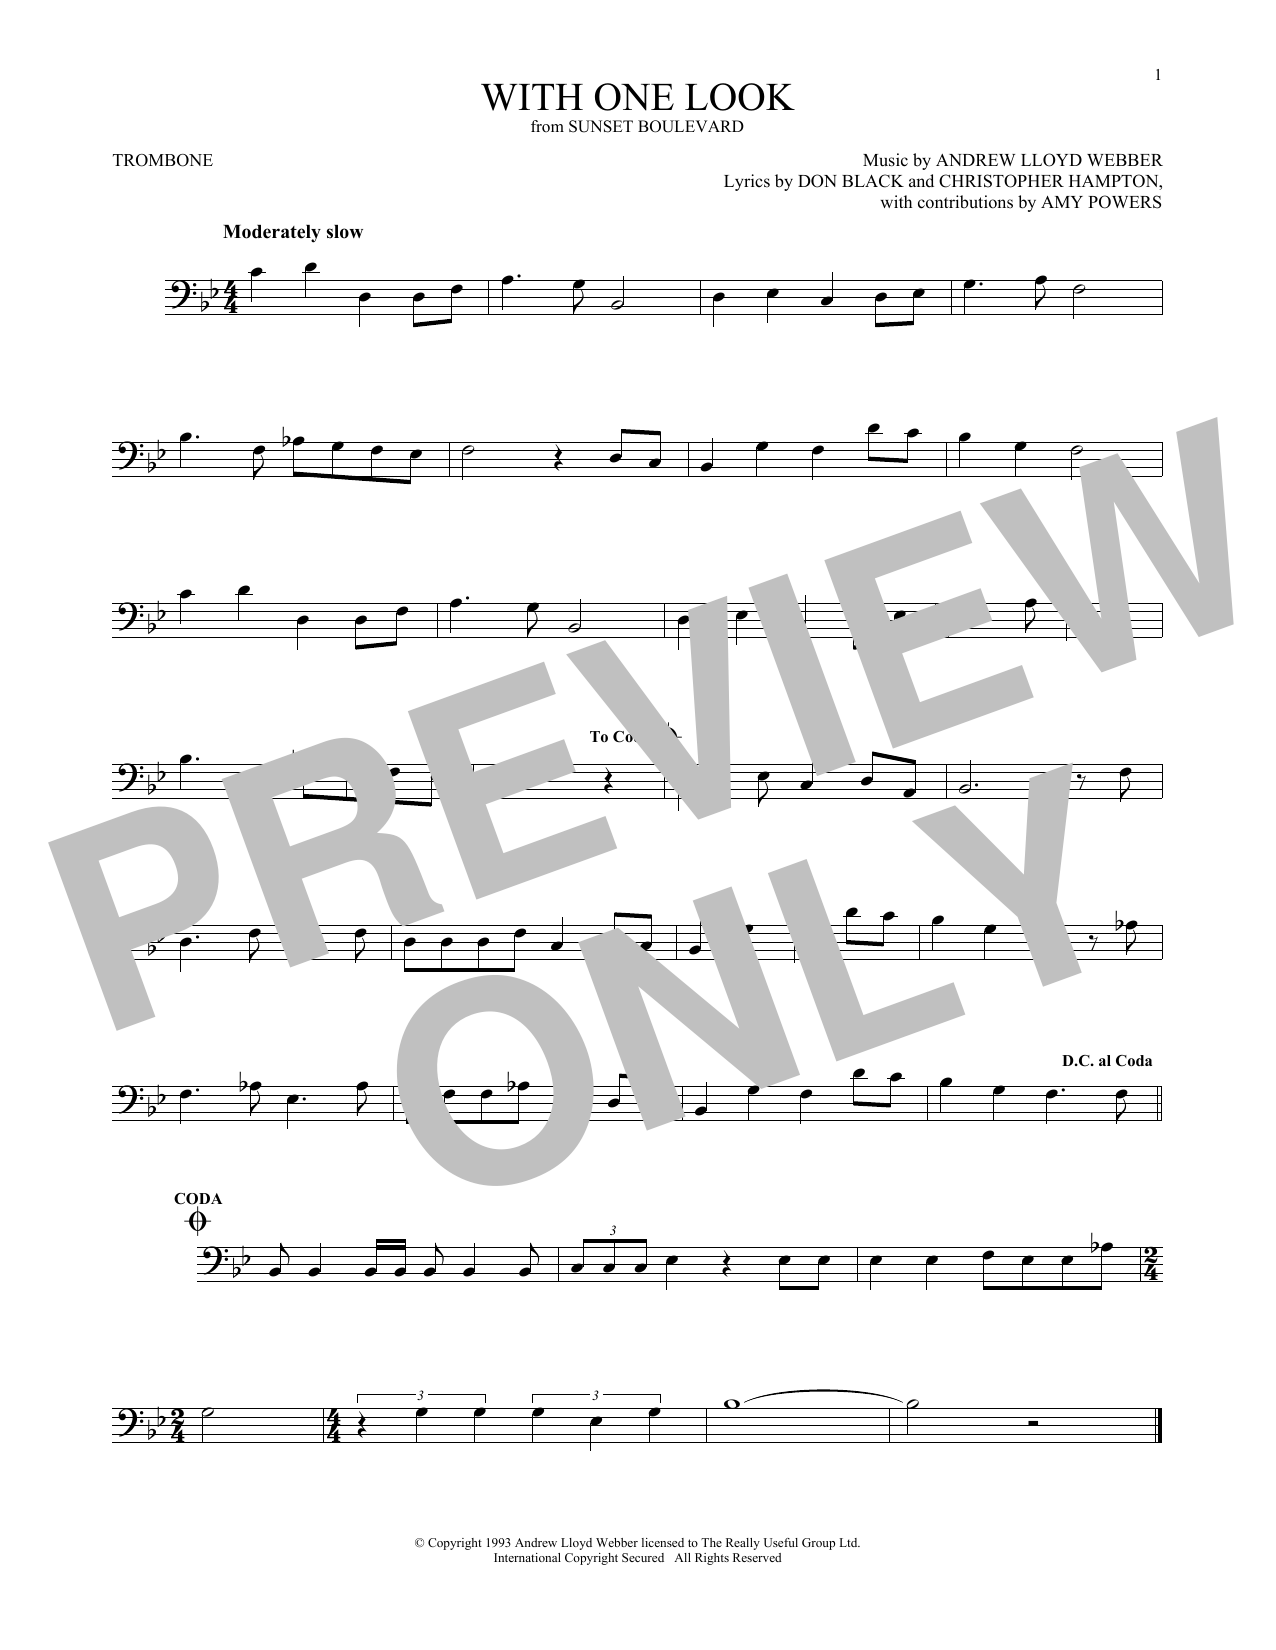 Trombone Keith Whitley Sheet Music At Stantons Sheet Music